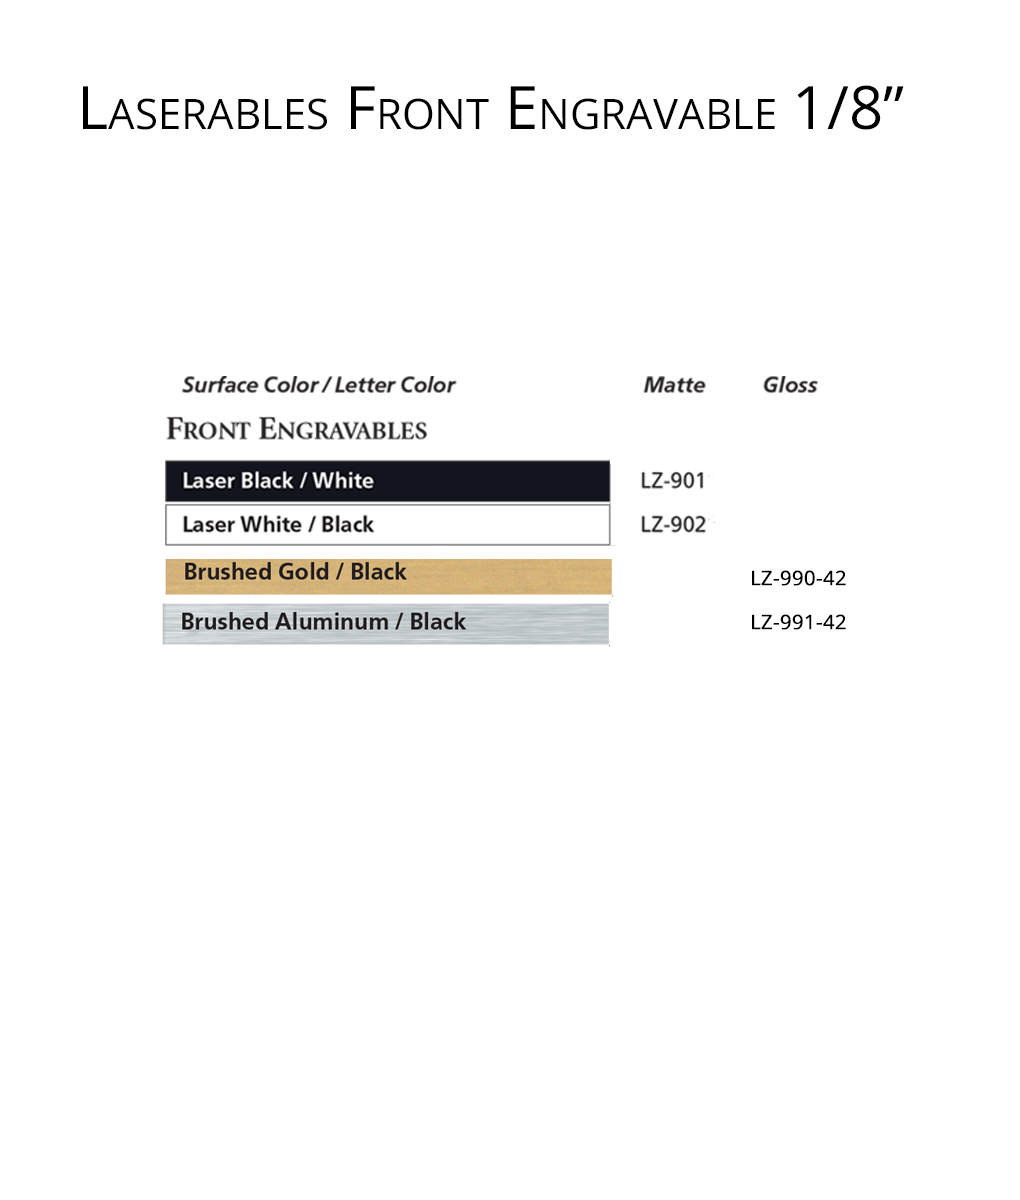 IPI Laserables Front Engravable 1/8 color options from Main Trophy Supply